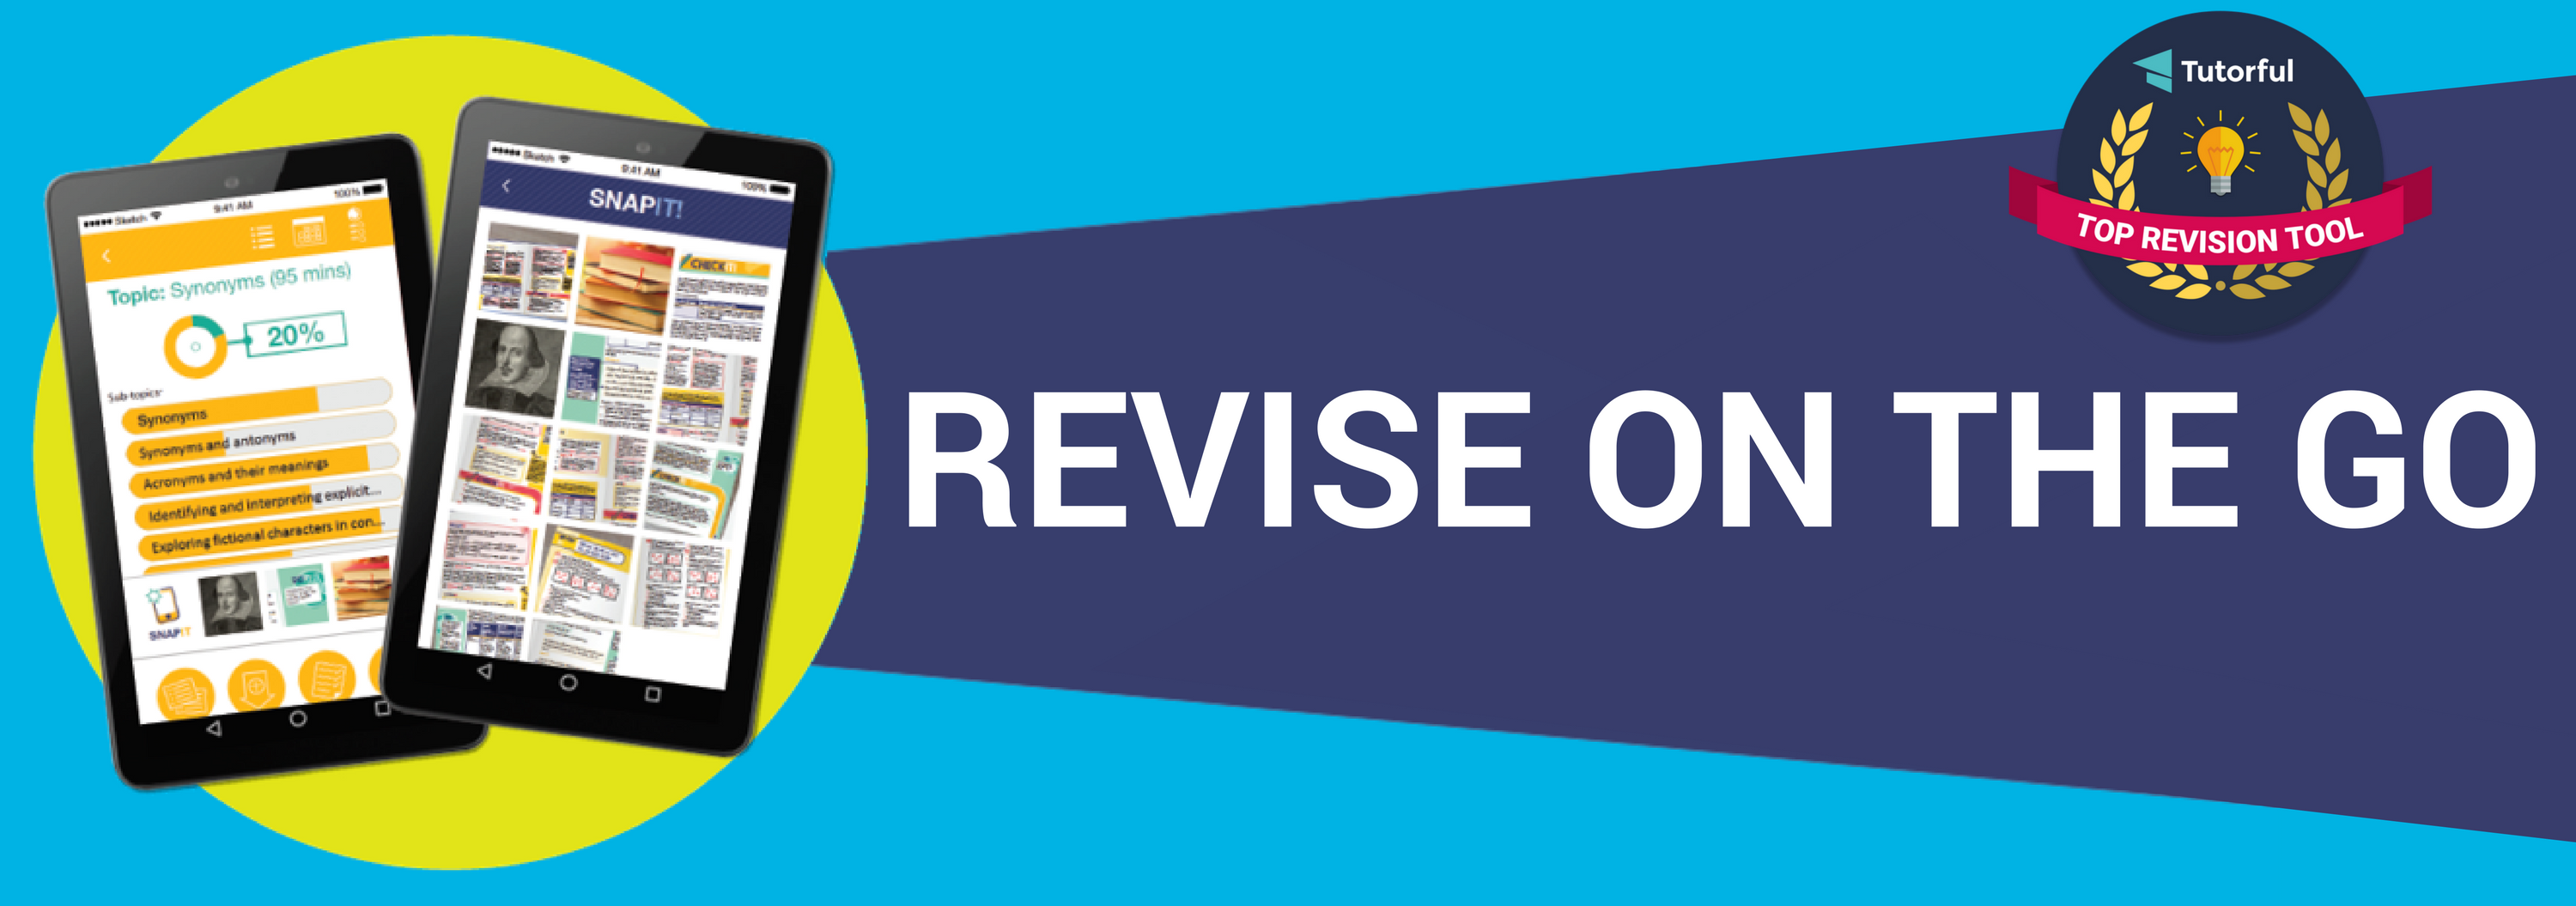 revise on the go - gcse blog banner.png